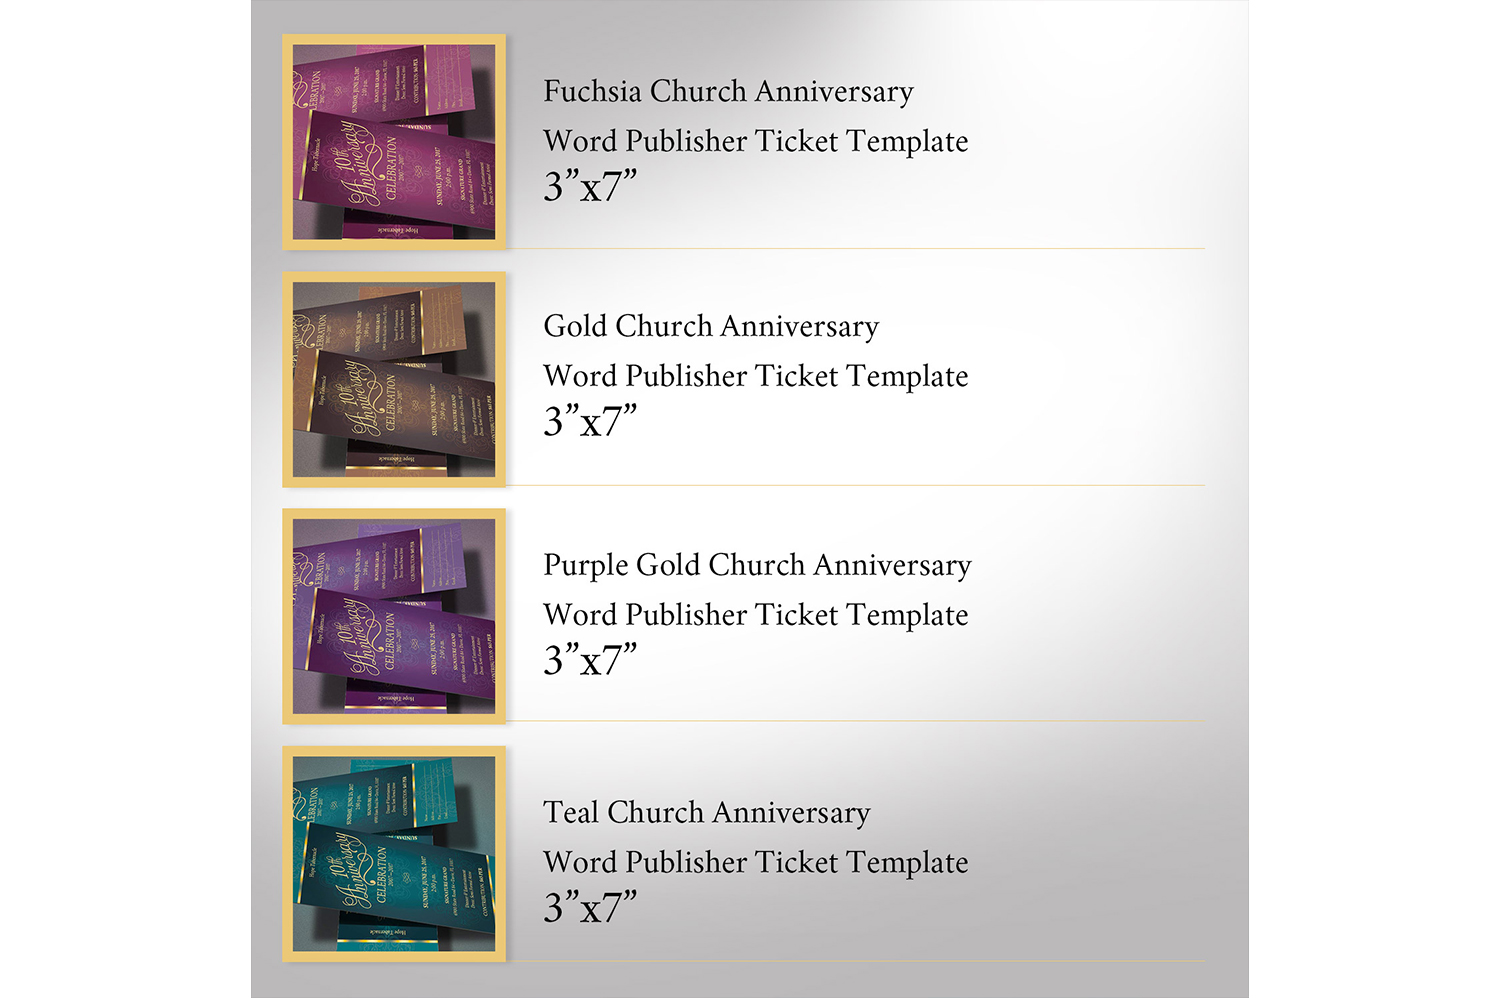 Church Anniversary Publisher Word Ticket Bundle example image 2